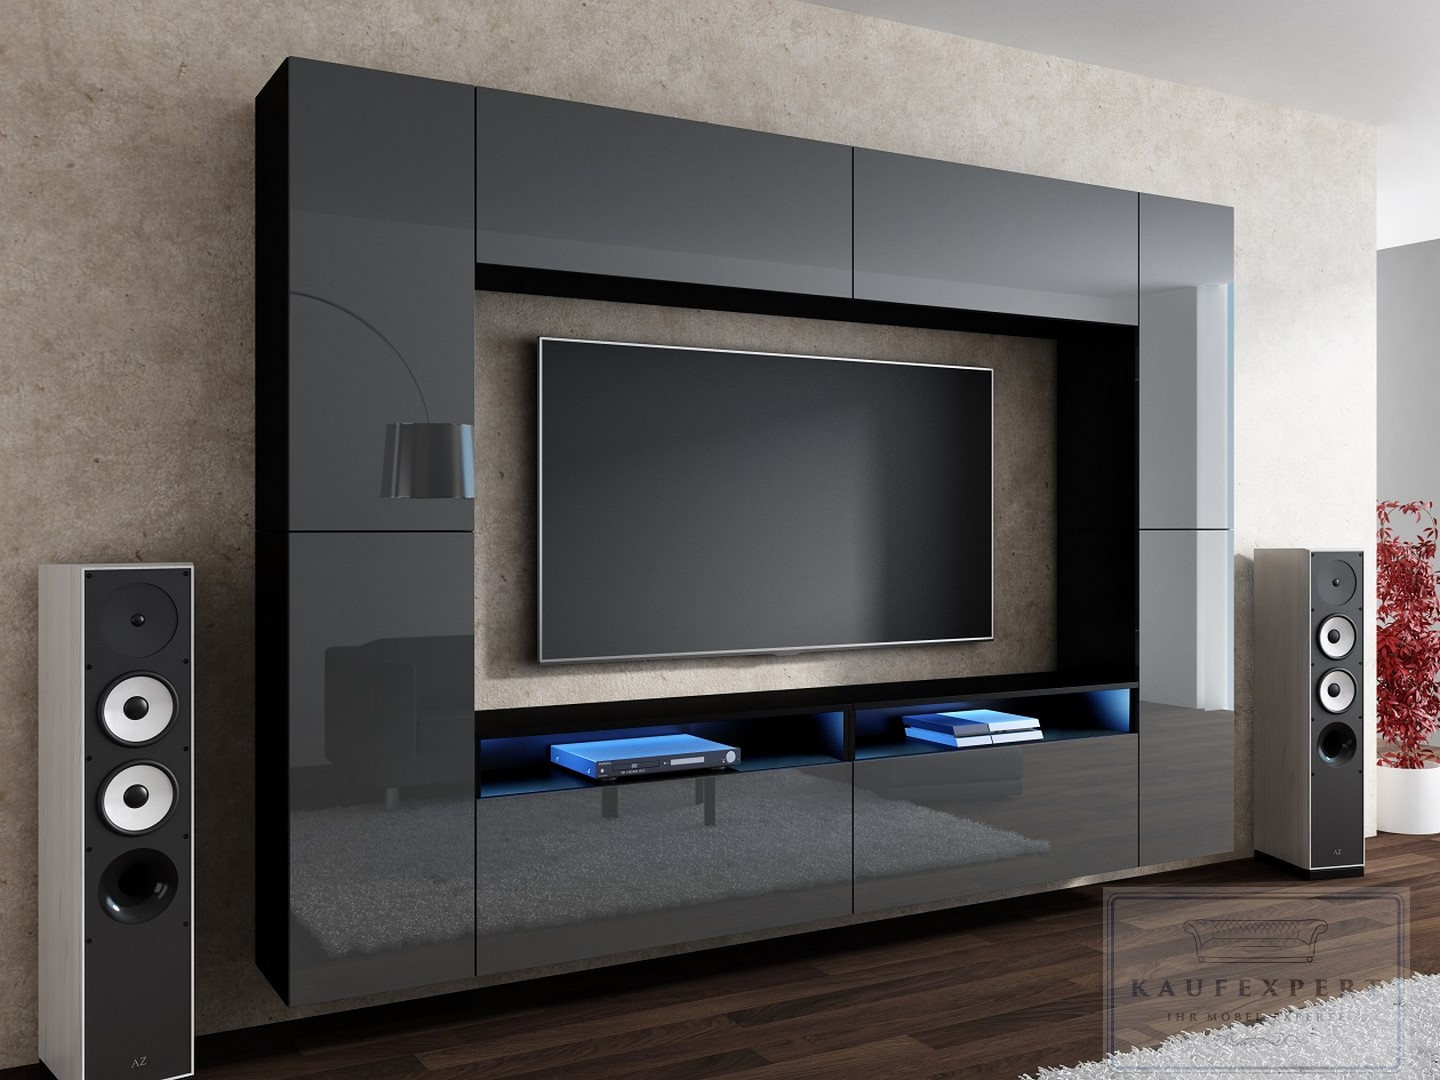 wohnwand cinema grau hochglanz schwarz design modern led. Black Bedroom Furniture Sets. Home Design Ideas